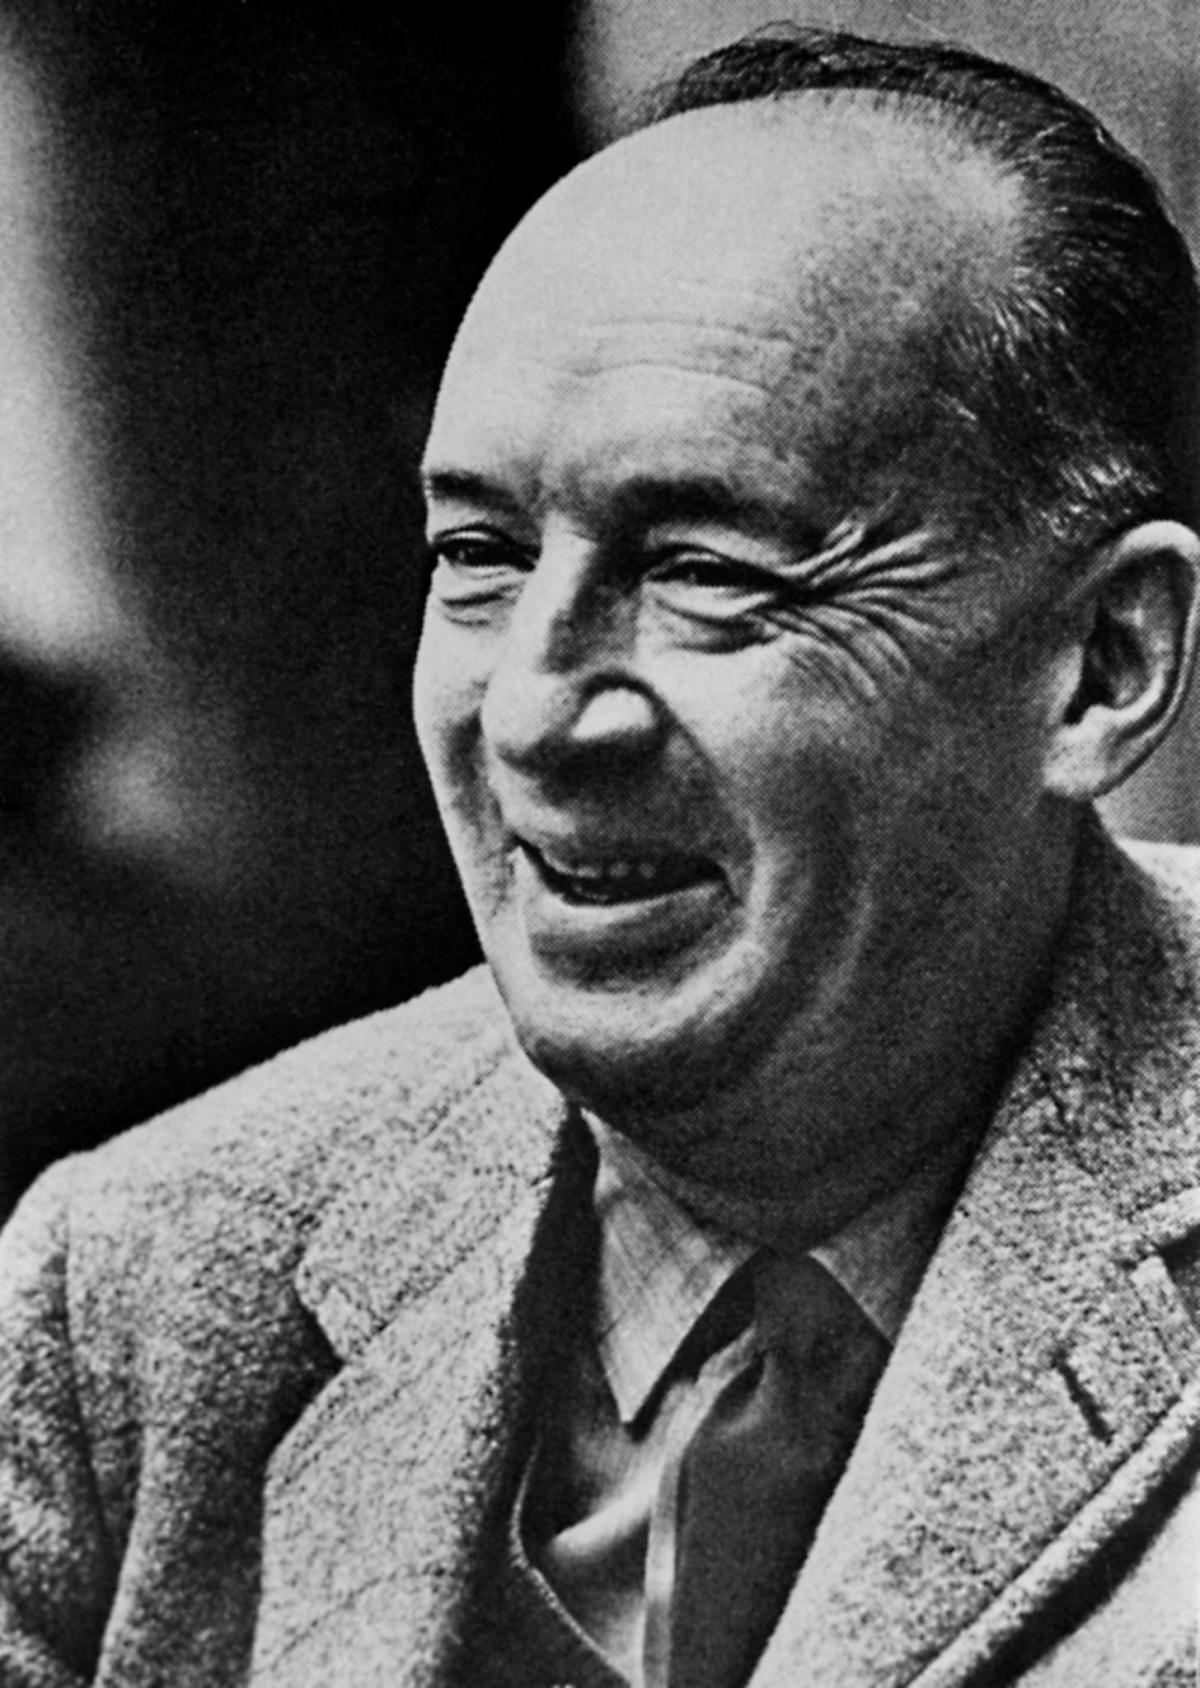 Head and shoulders photo of Nabokov, clean shaven and in a grey suit, striped tie